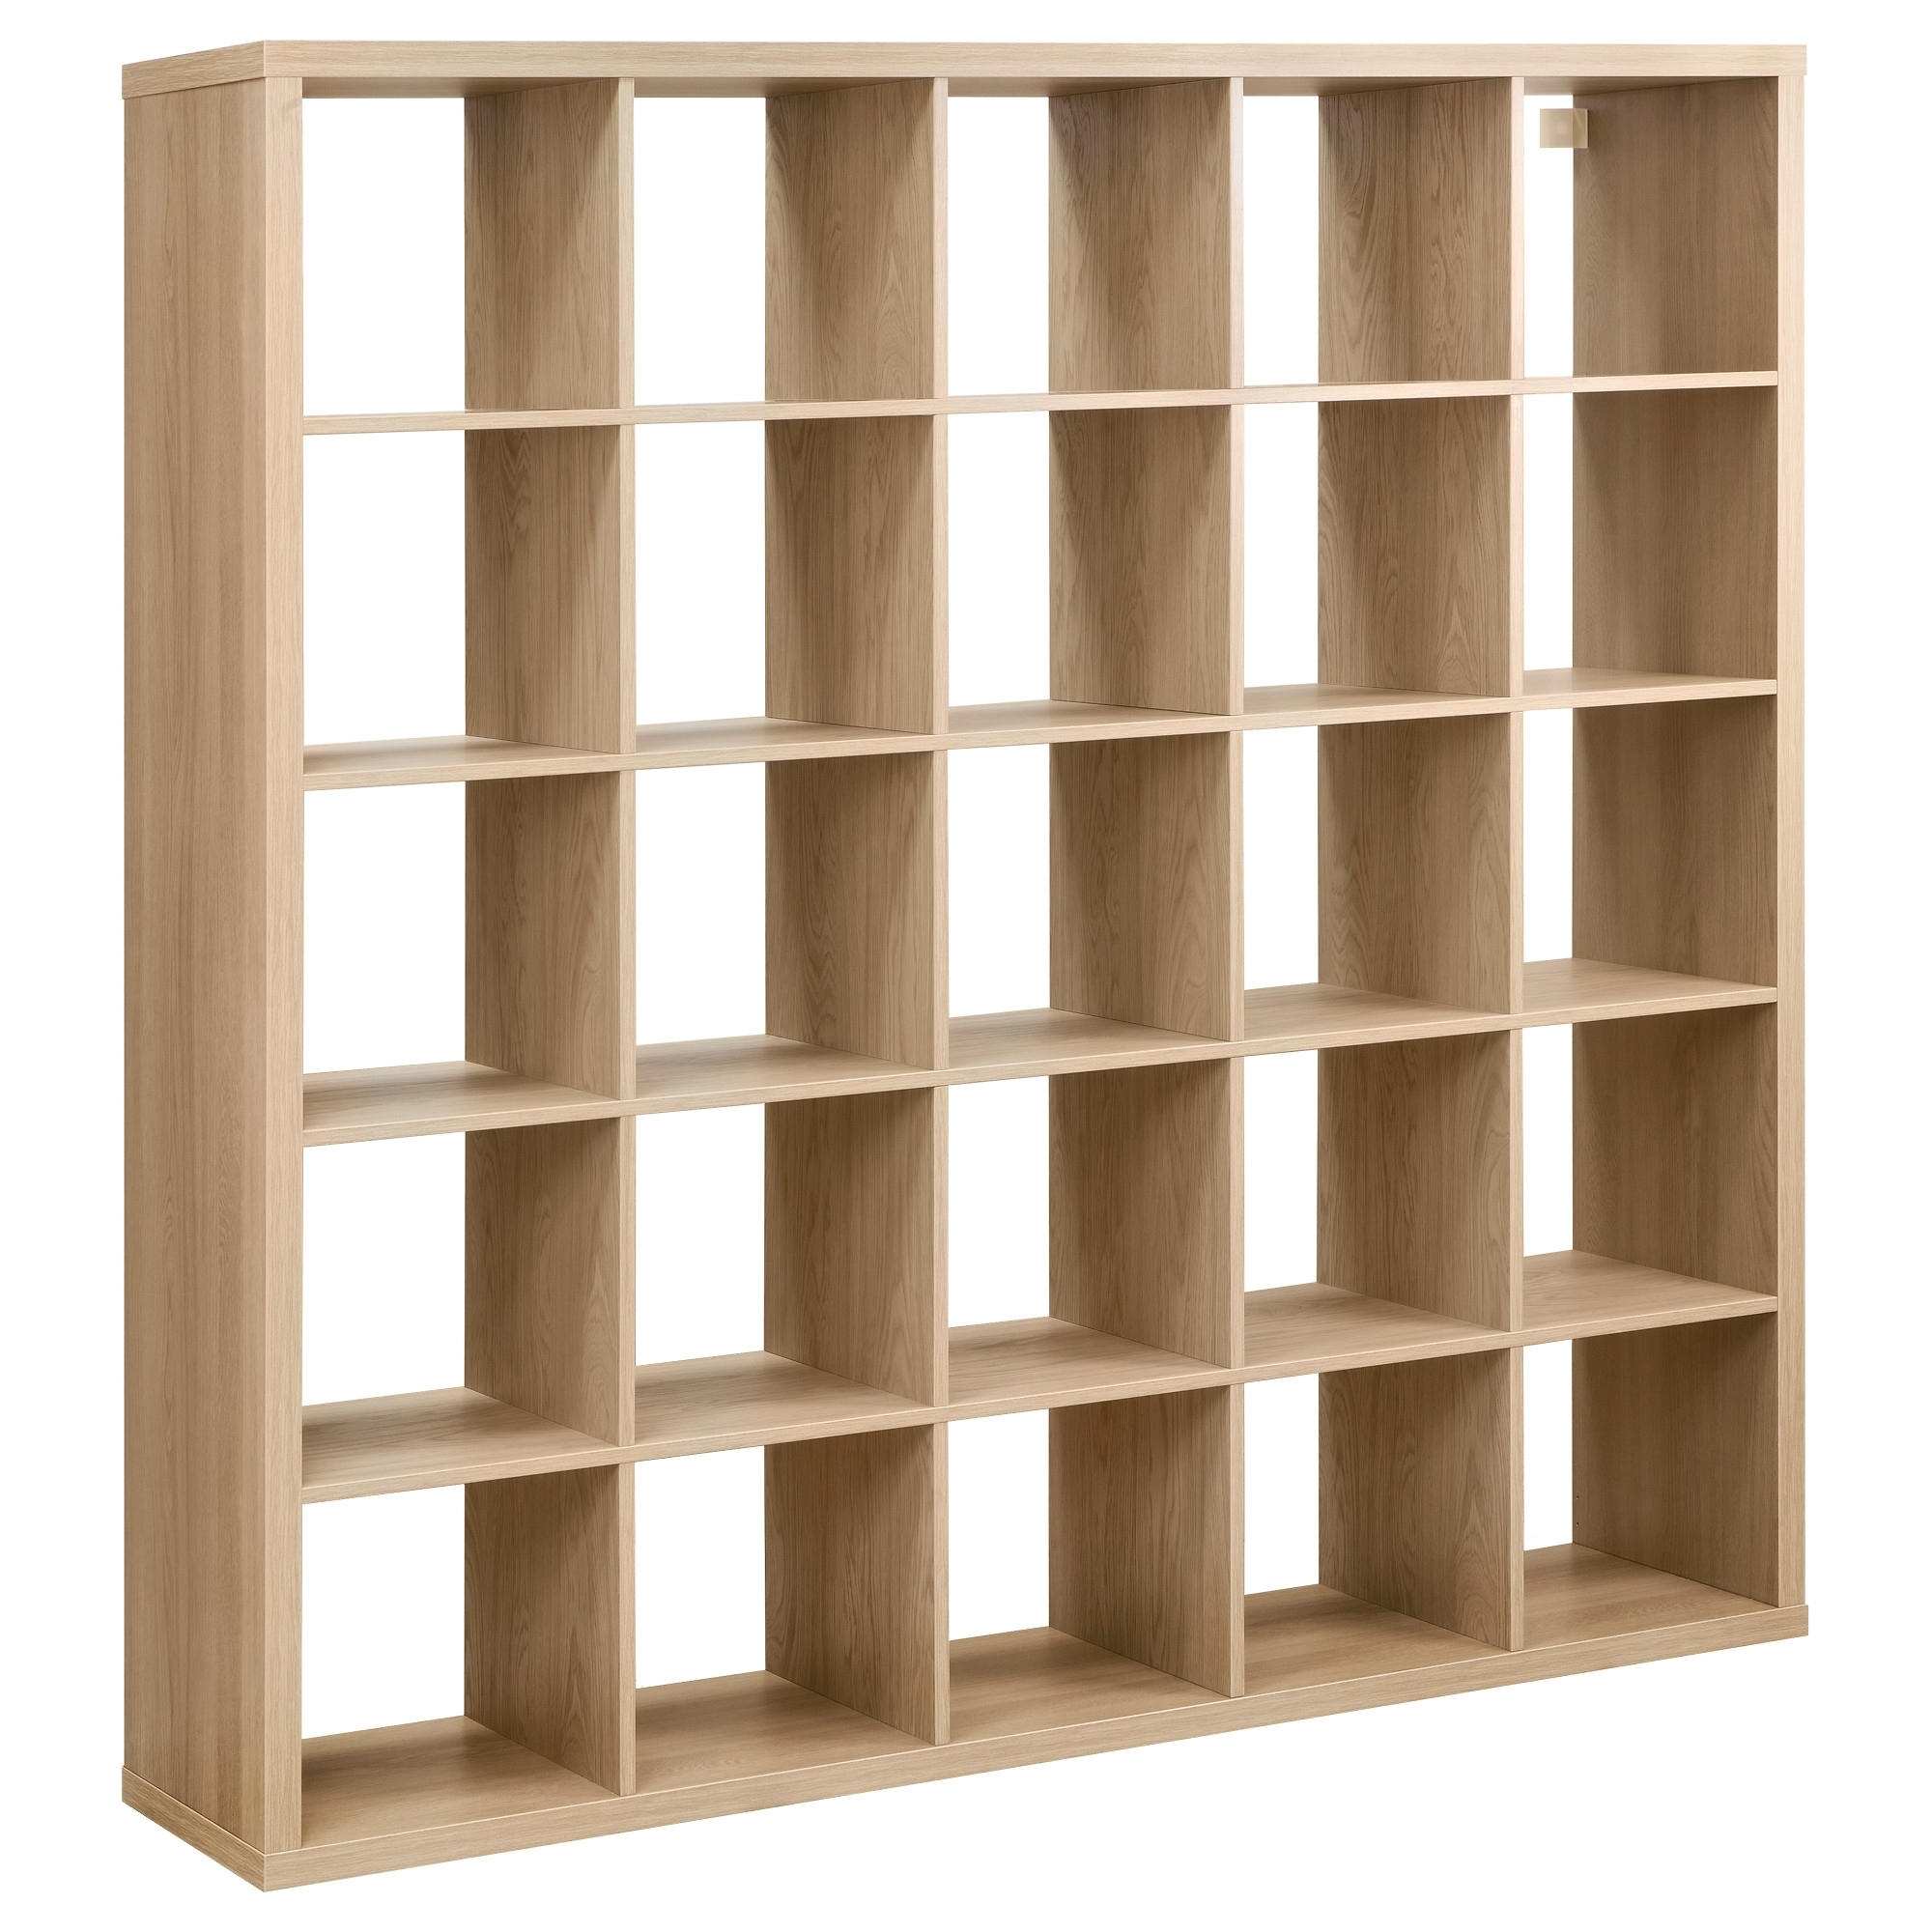 Well Liked Oak Wall Shelving Units Pertaining To Shelving Unit Shelves Argos Full Hd Wallpaper Photos Captivating (View 15 of 15)